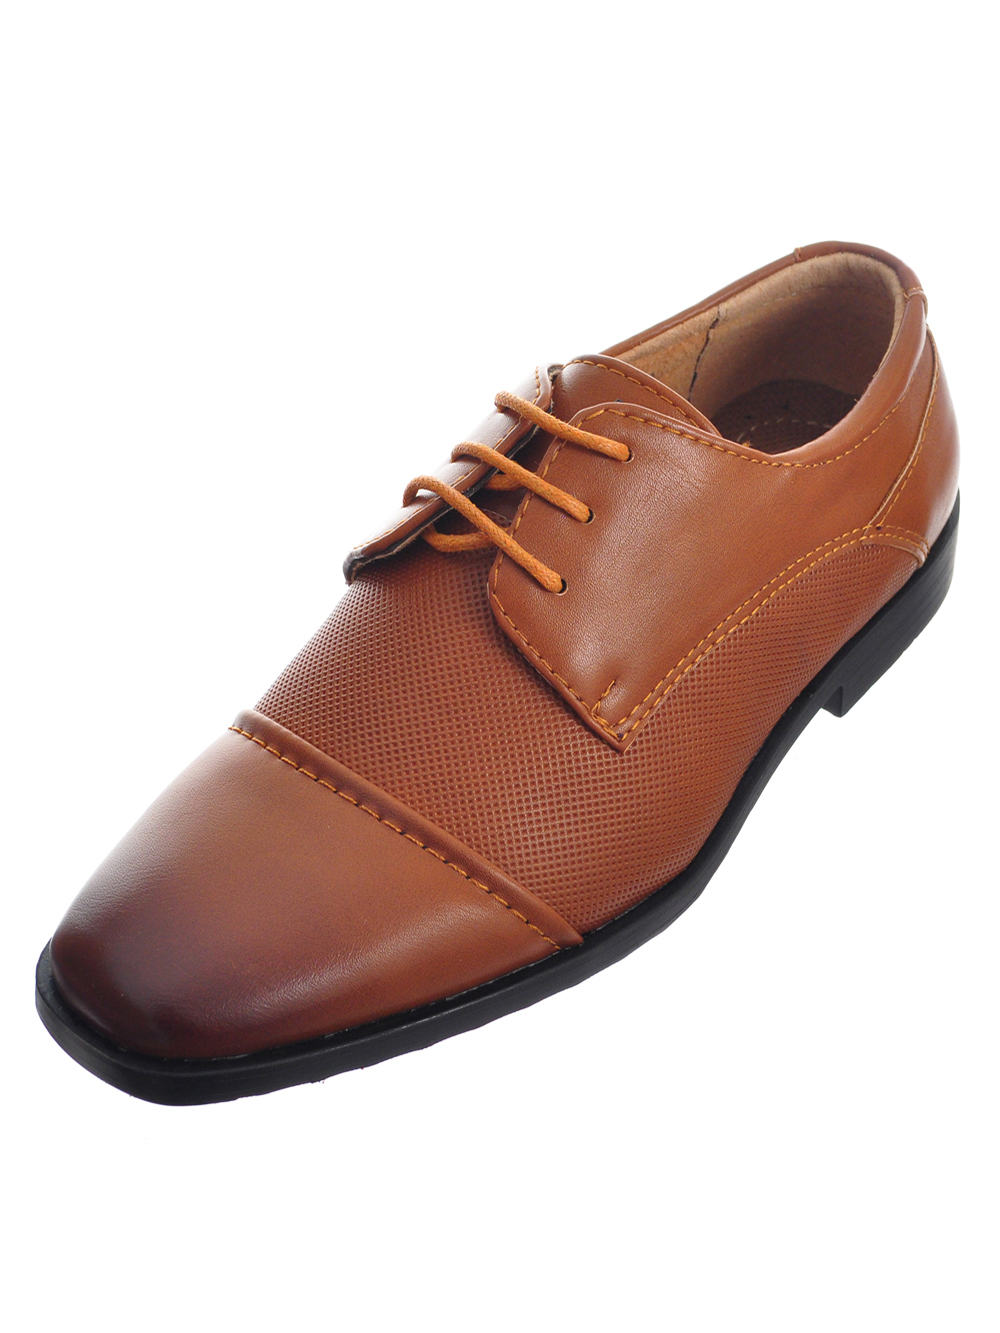 Boys' Dress Shoes (Sizes 6 - 8)